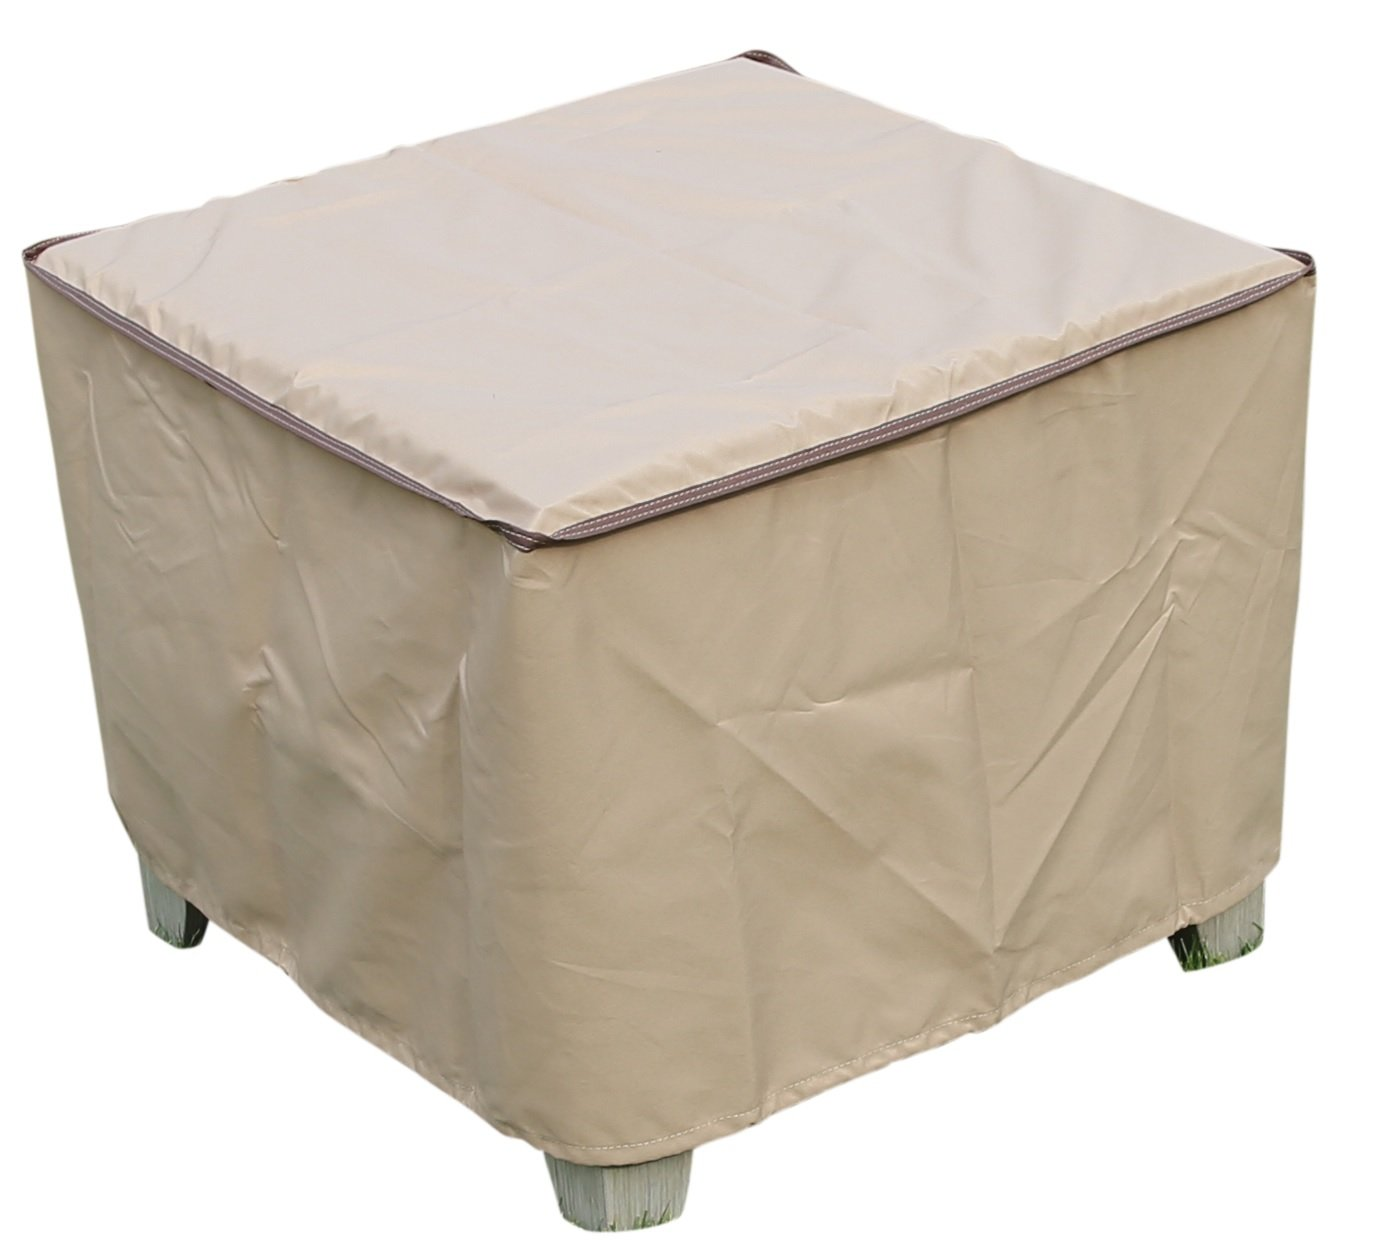 SORARA Rectangular Coffee/Side/End Table Cover Outdoor Porch Ottoman Table Cover, Water Resistant, 26'' L x 26'' W x 18'' H